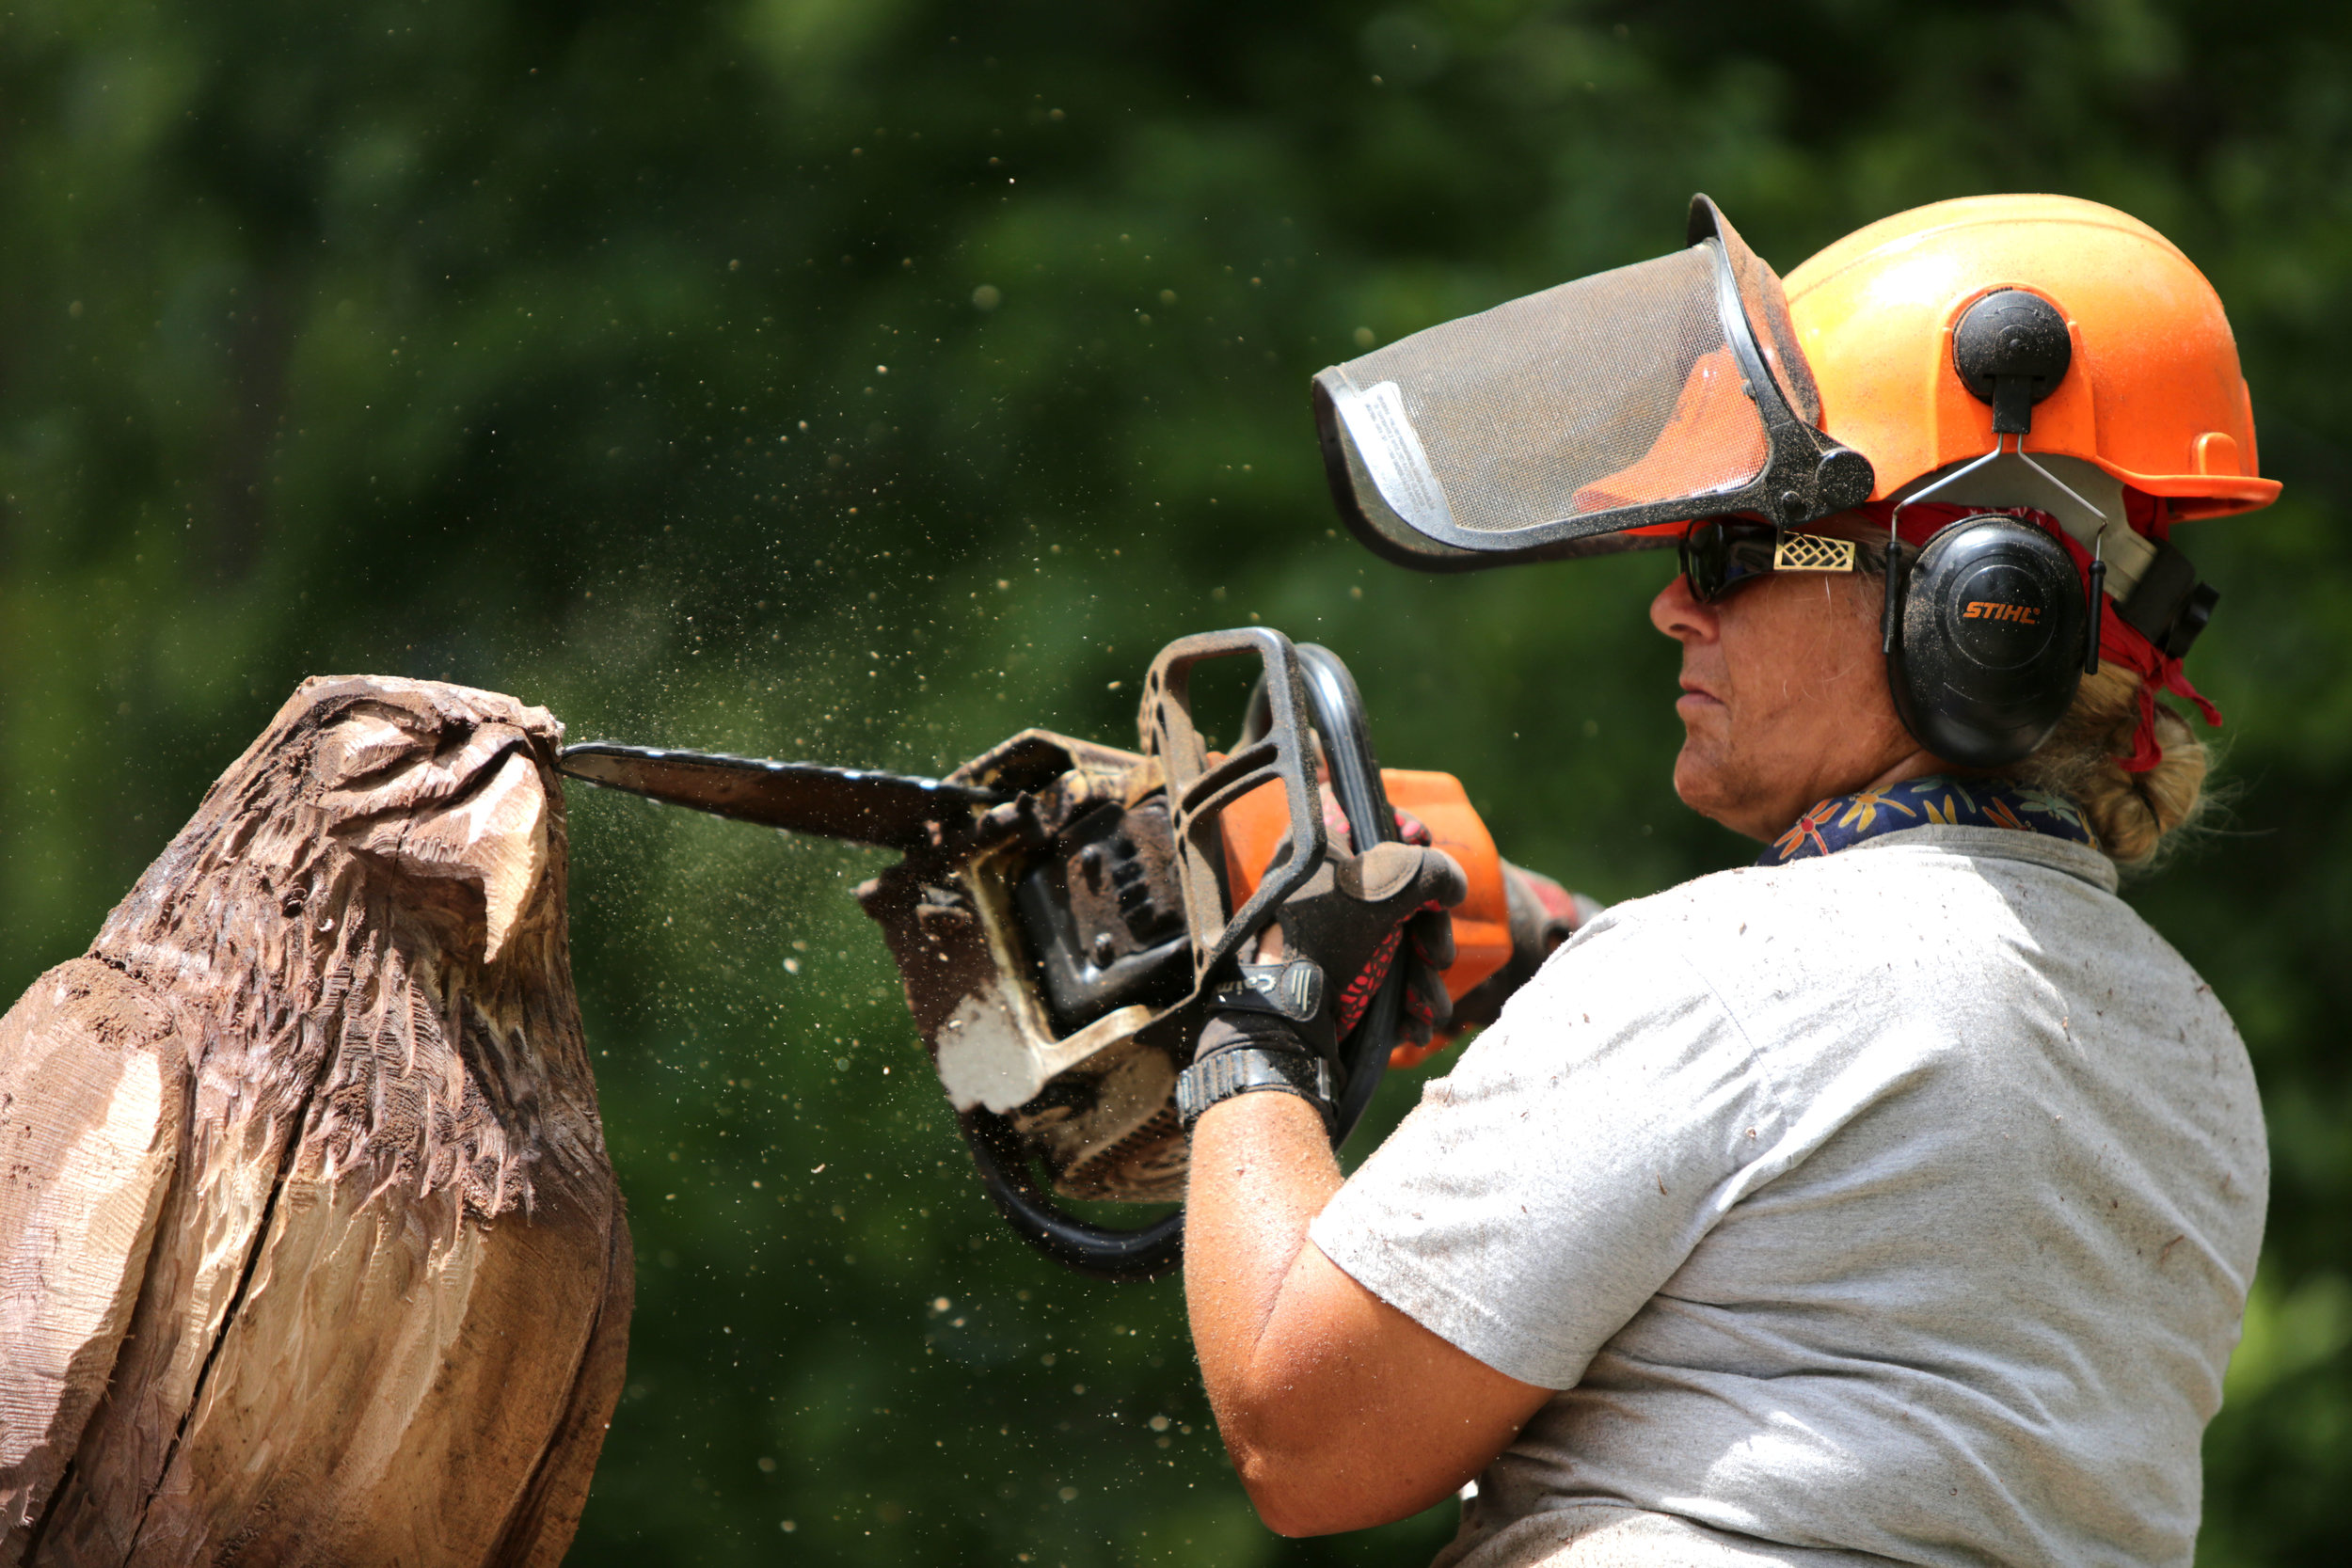 Faye Braaten, a chainsaw carver, works on carving an eagle out of a black walnut tree for Houston Gardens located at 515 23rd Ave., in Greeley, Colorado, July, 2017. Braaten has been carving for seventeen years and owns the store ChainsawMama located at 5641 W Eisenhower Blvd., in Loveland, Colorado (Greeley Tribune Newspaper).